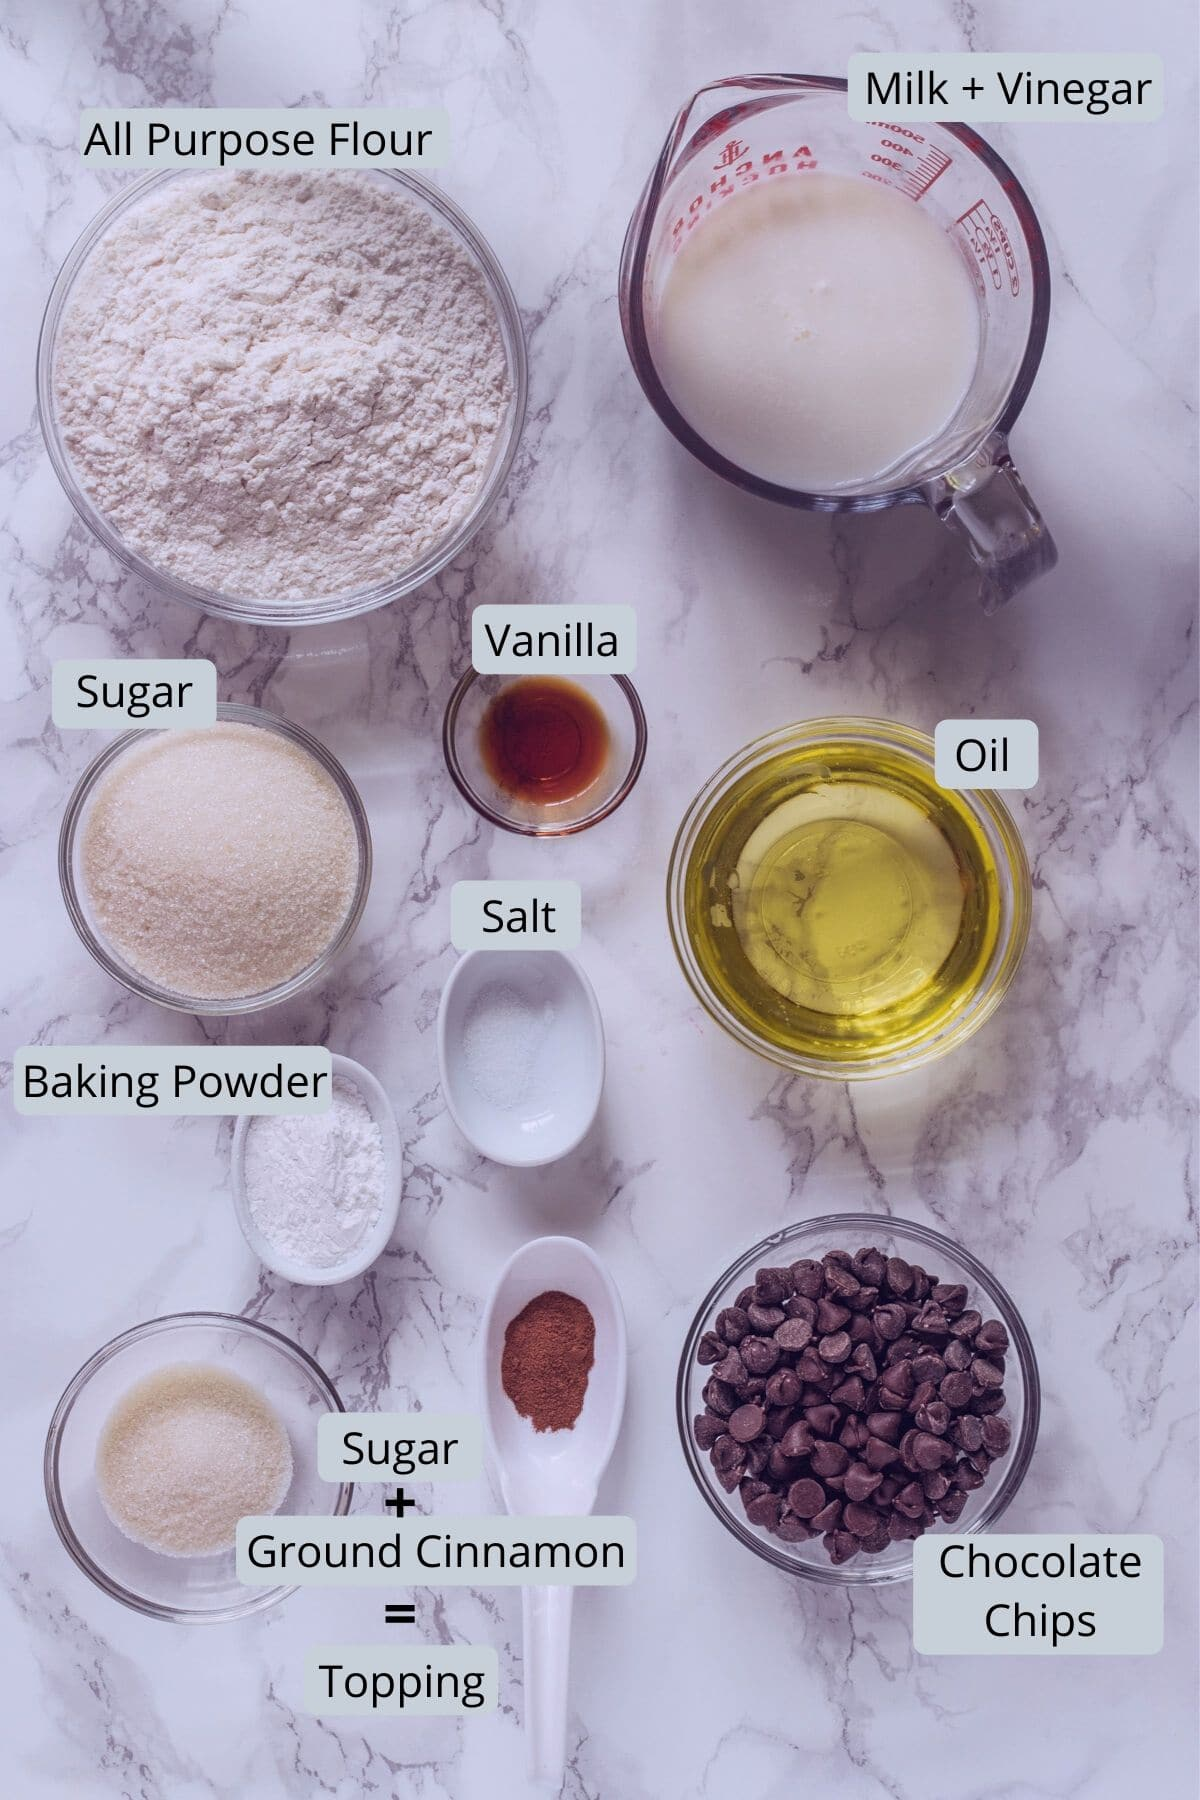 Image of ingredients used in eggless chocolate chip muffins. Includes milk, vinegar, oil, vanilla, flour, sugar, baking powder, salt, chocolate chips